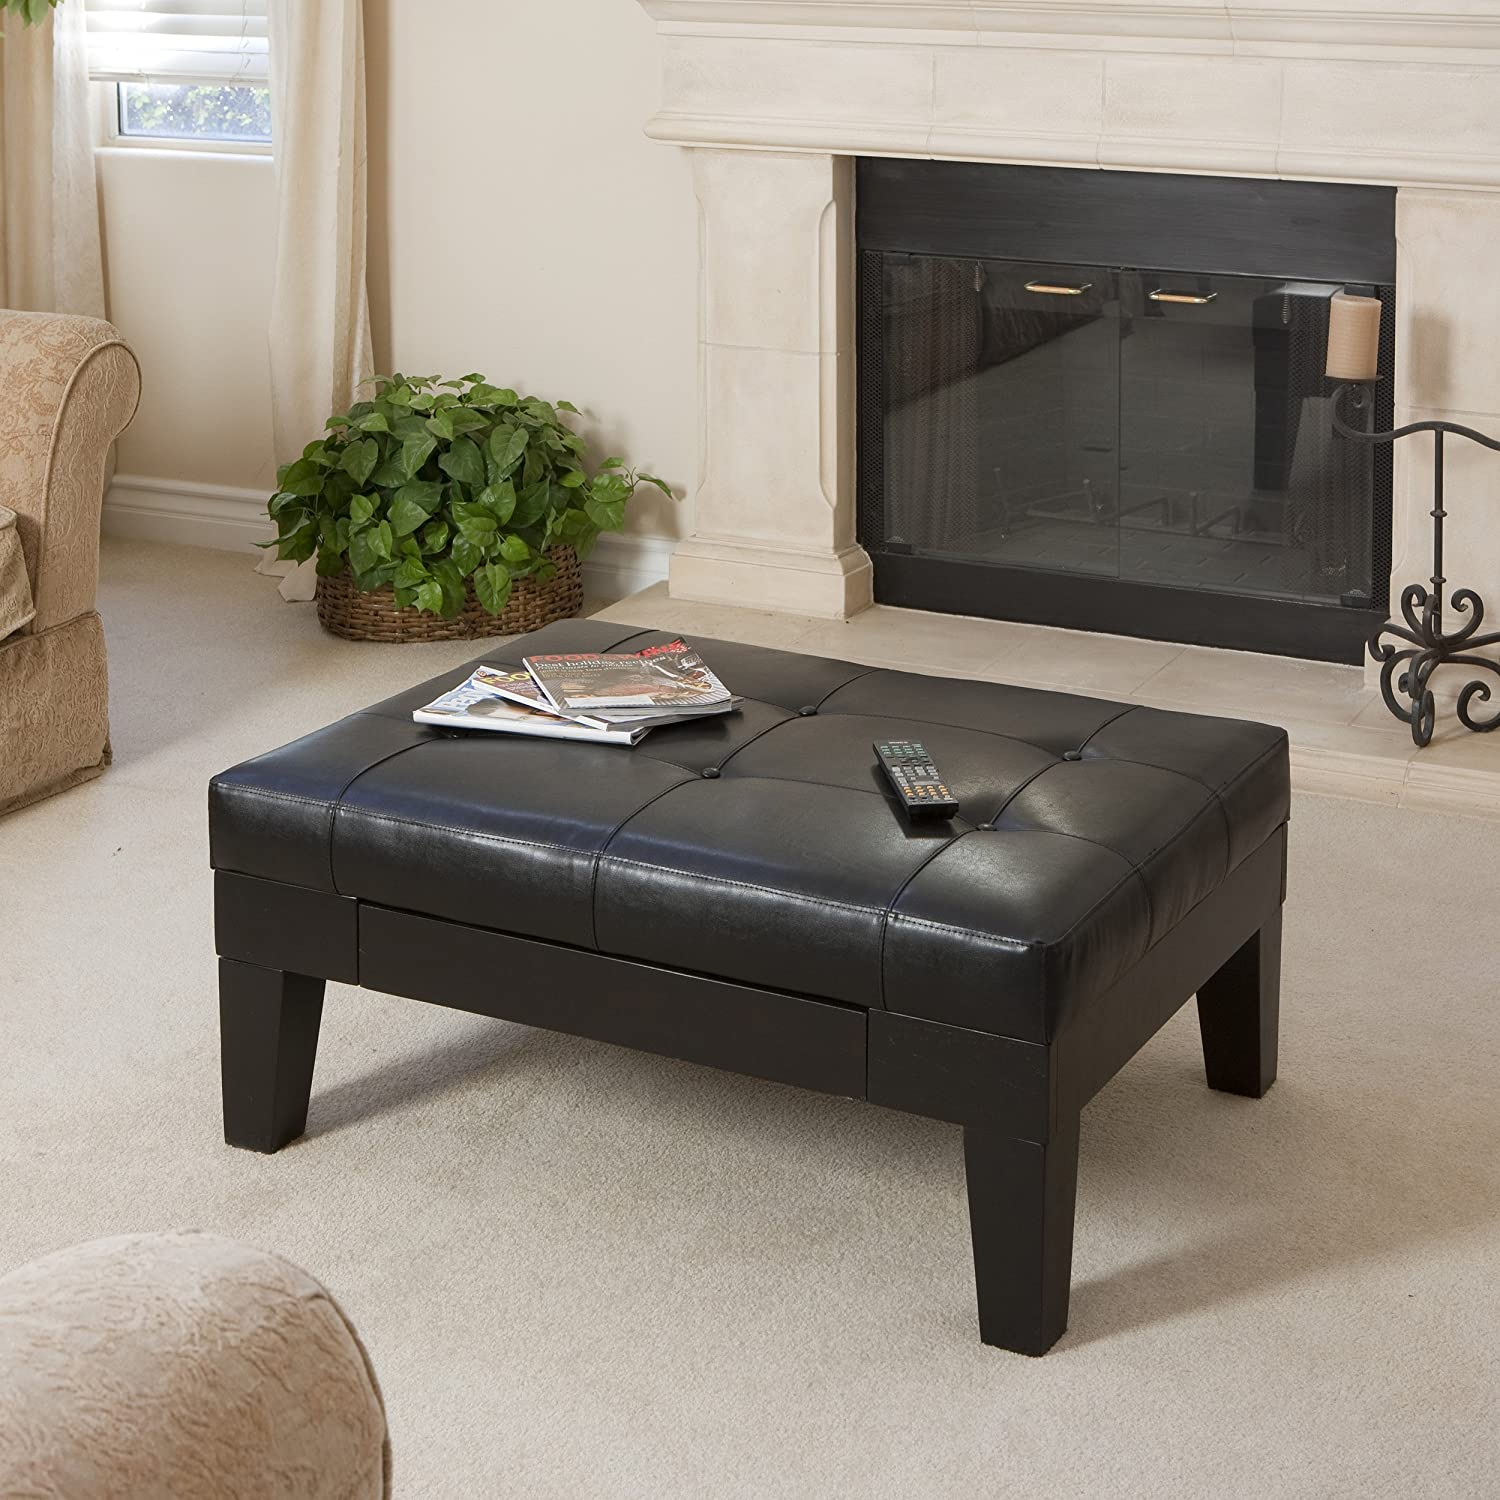 Amazing Christopher Knight Home Tucson Black Leather Tufted Top Coffee Table W Drawer Pdpeps Interior Chair Design Pdpepsorg